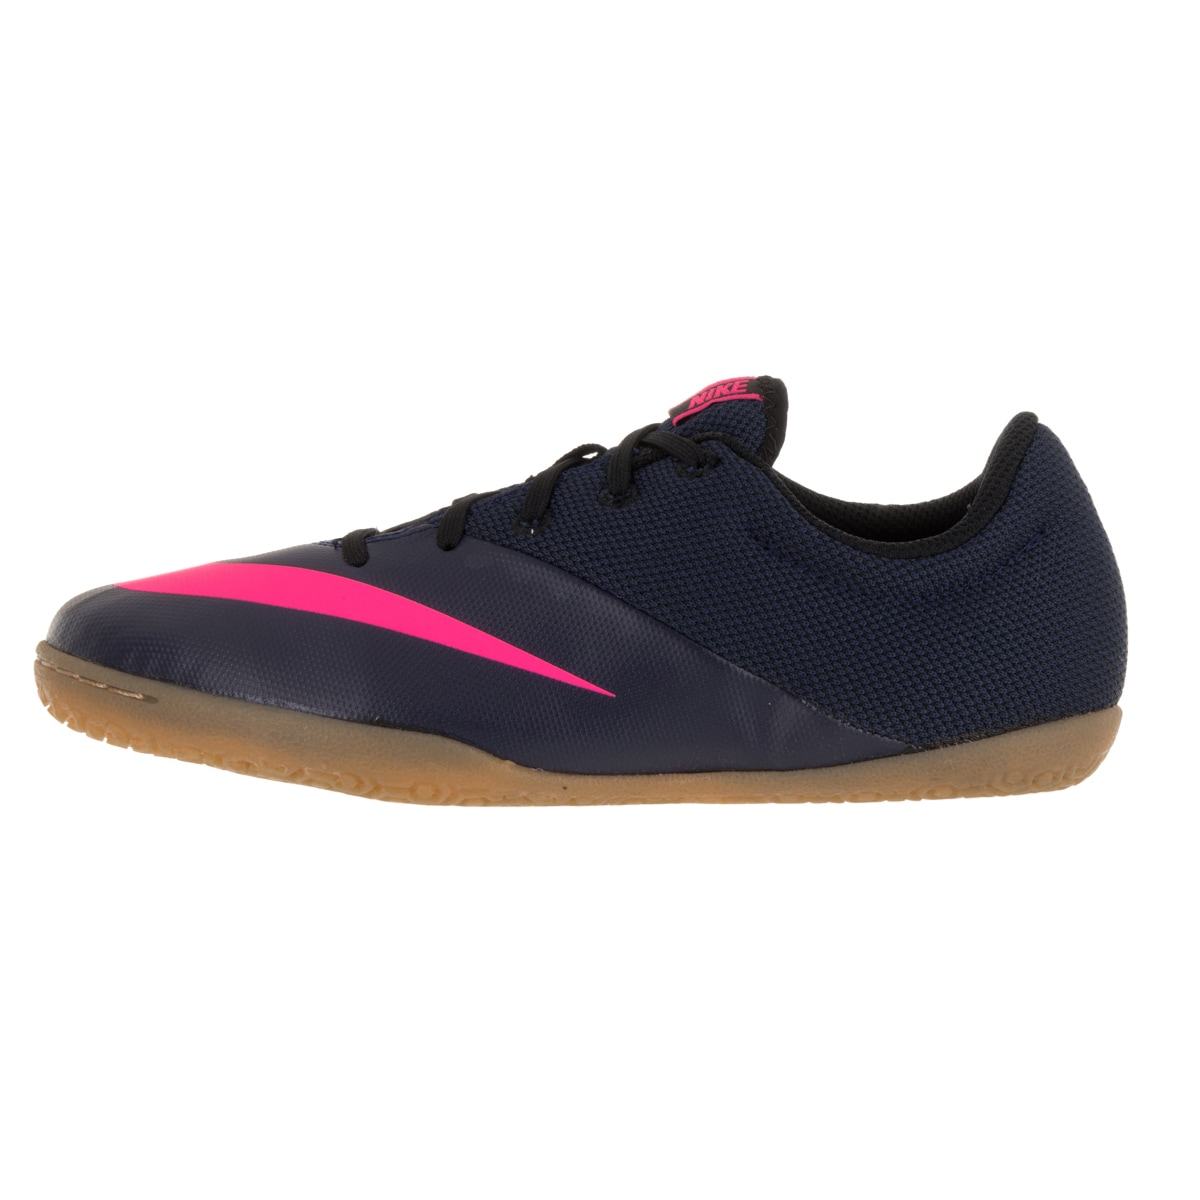 7a4b10584 Shop Nike Kids Jr Mercurialx Pro Ic Mid Navy Mid Navy Pink Blst Rcr B Indoor  Soccer Shoe - Free Shipping Today - Overstock - 12330618